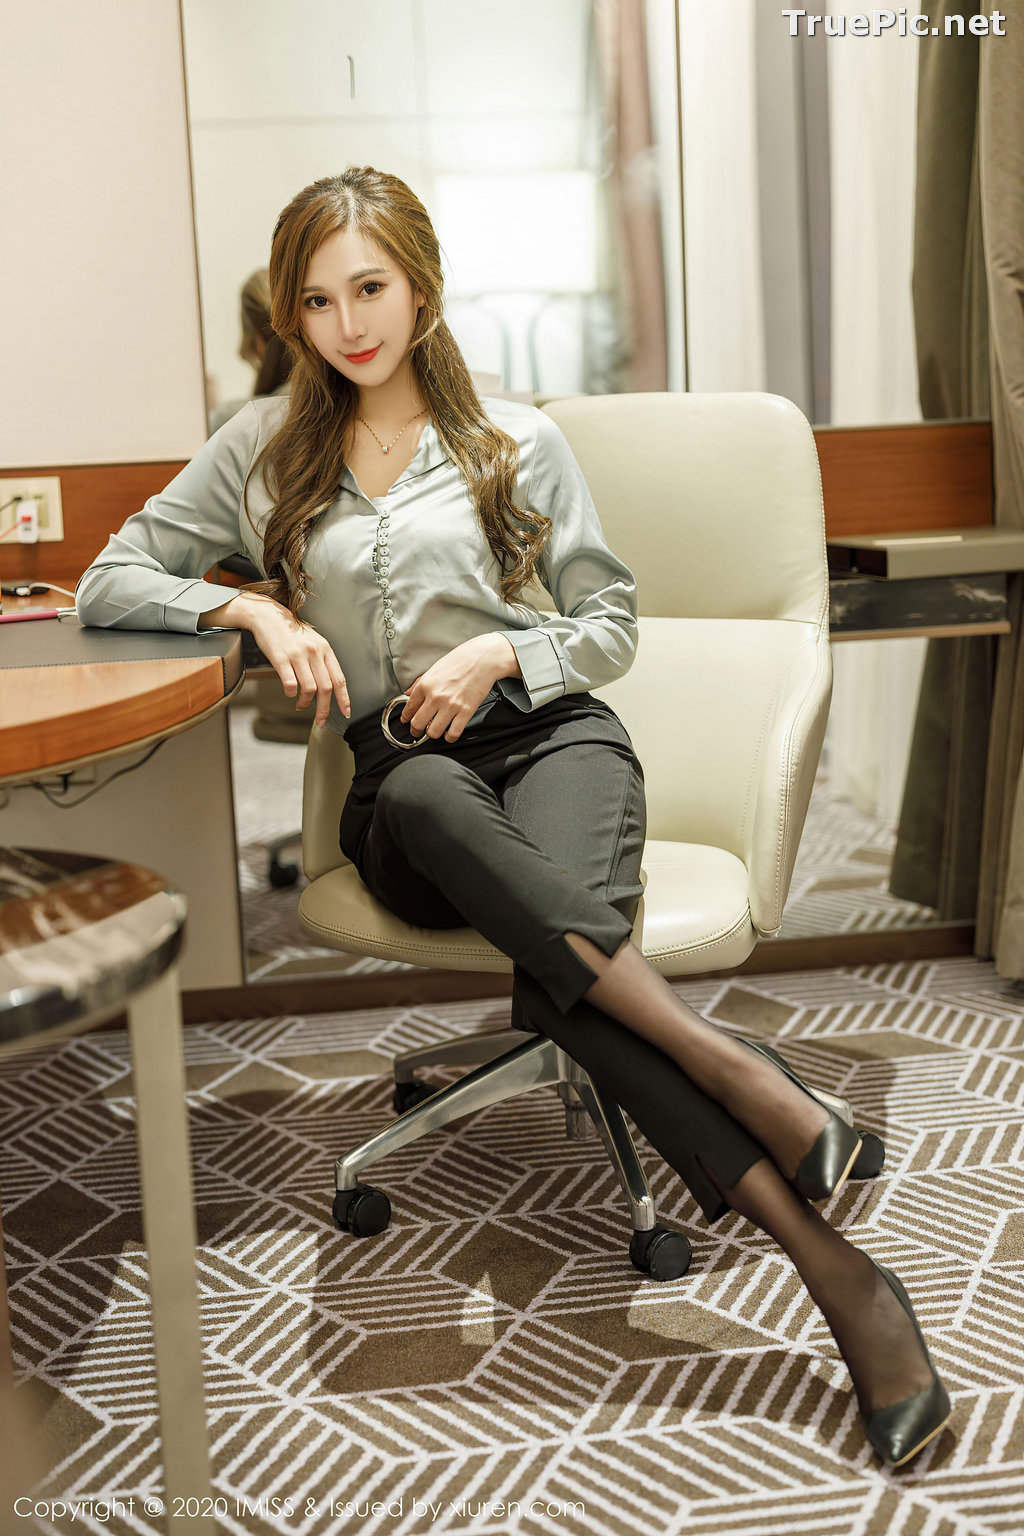 Image IMISS Vol.492 - Chinese Model - Lavinia肉肉 - Long Legs Office Girl - TruePic.net - Picture-4